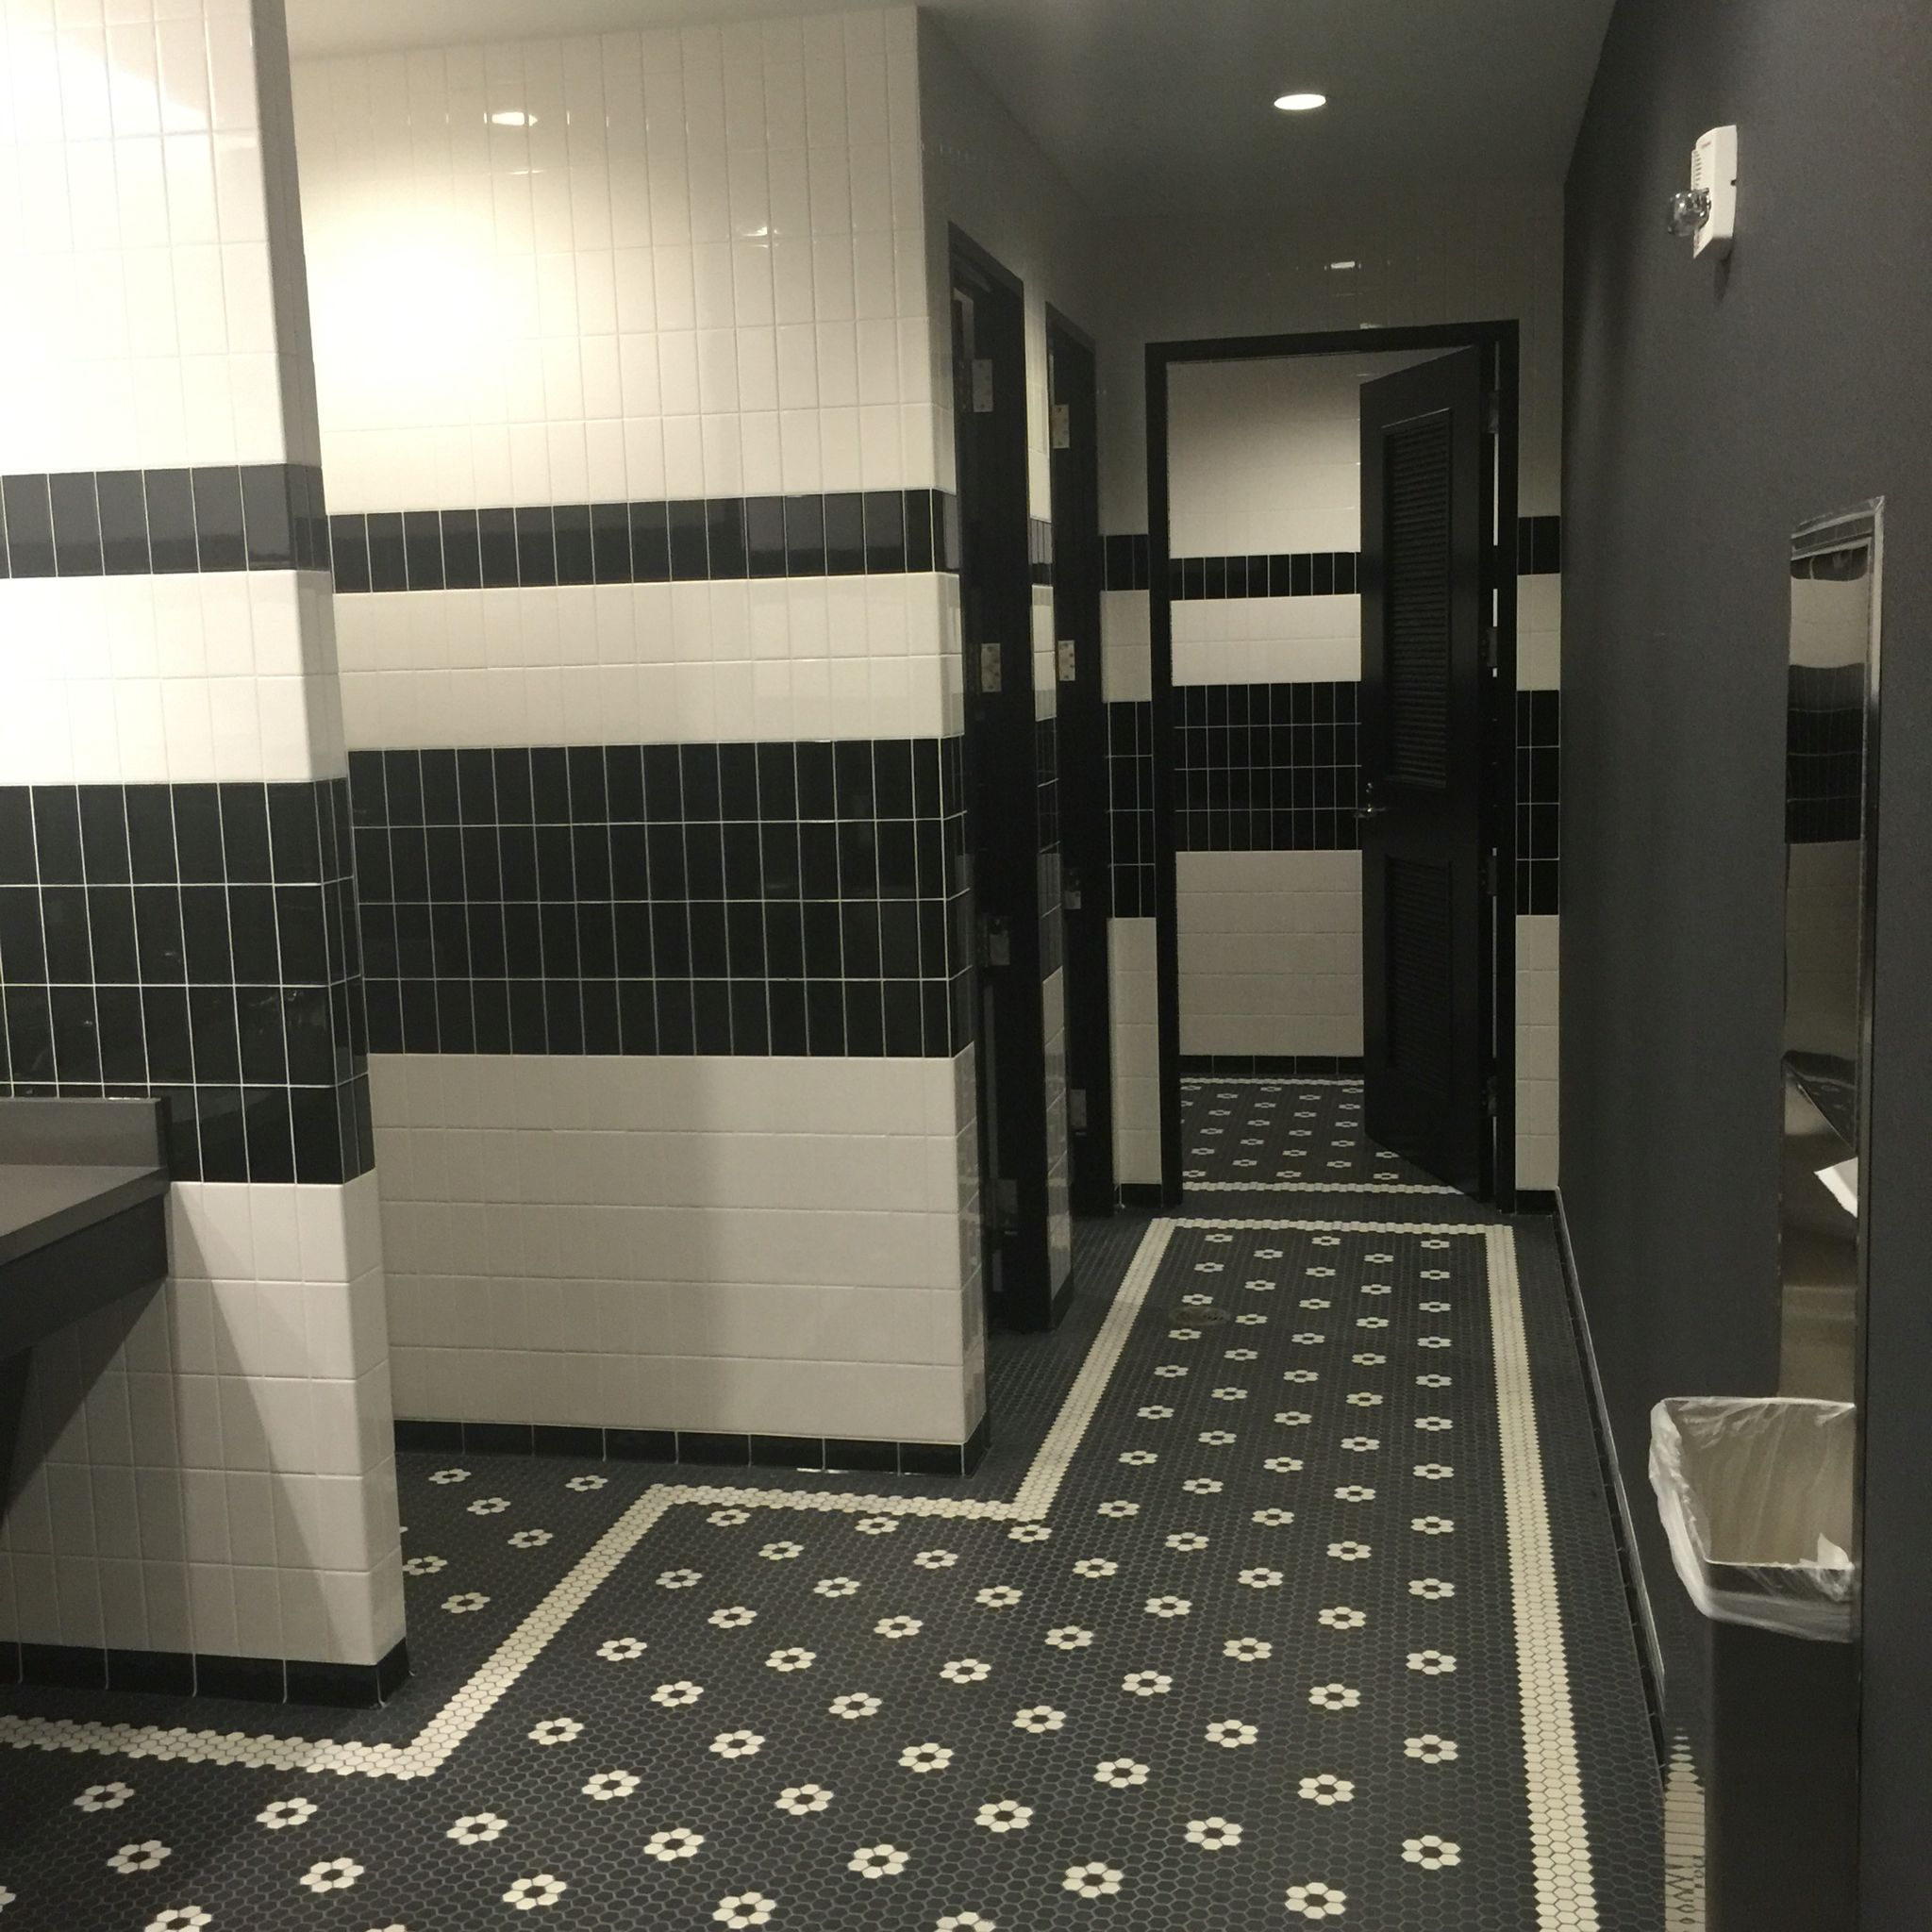 Daltile Rittenhouse Square X Subway Tile Installed In Soldier - Daltile chattanooga